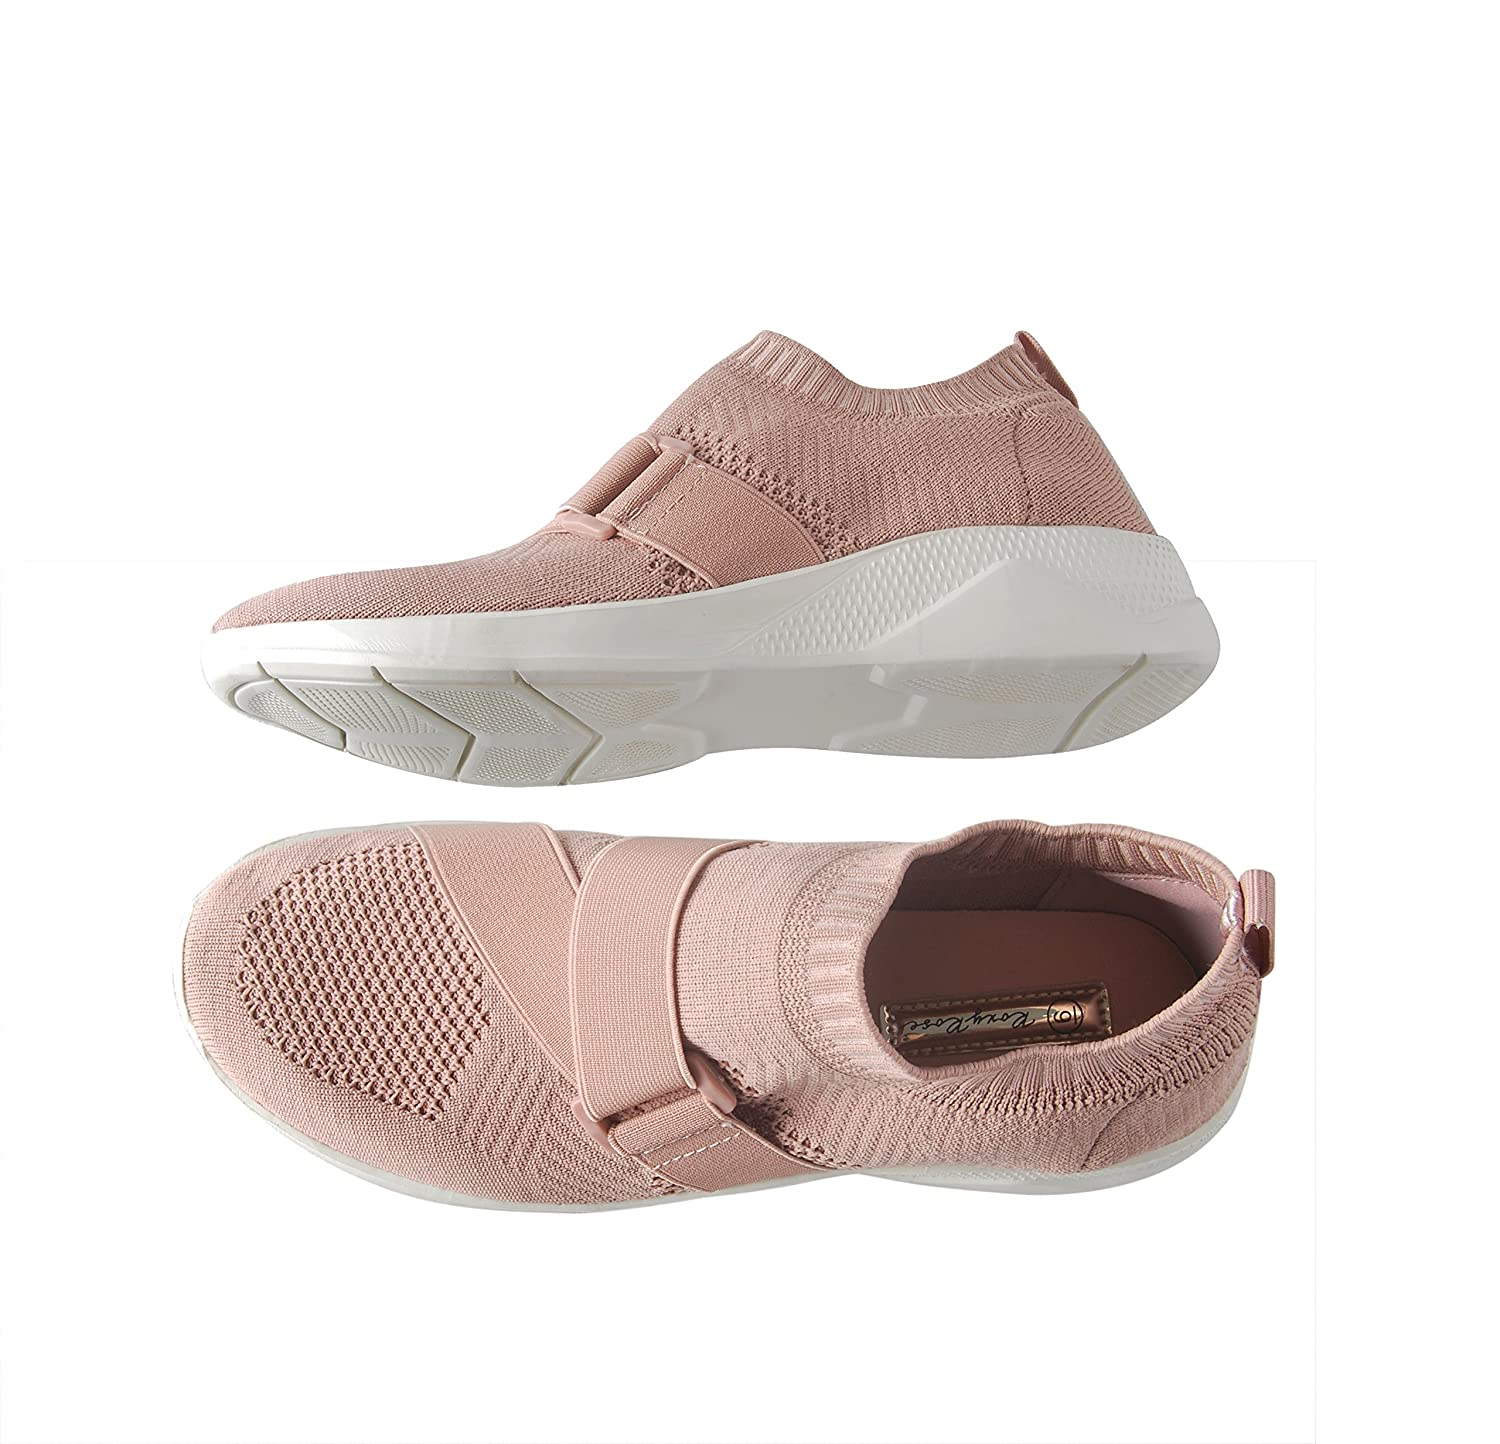 11eb24383876 ... ROXY ROSE Lightweight Sneakers Slip On Mesh Women Casual Casual Casual  Running Shoes B07BQ16KRG 7 M ...